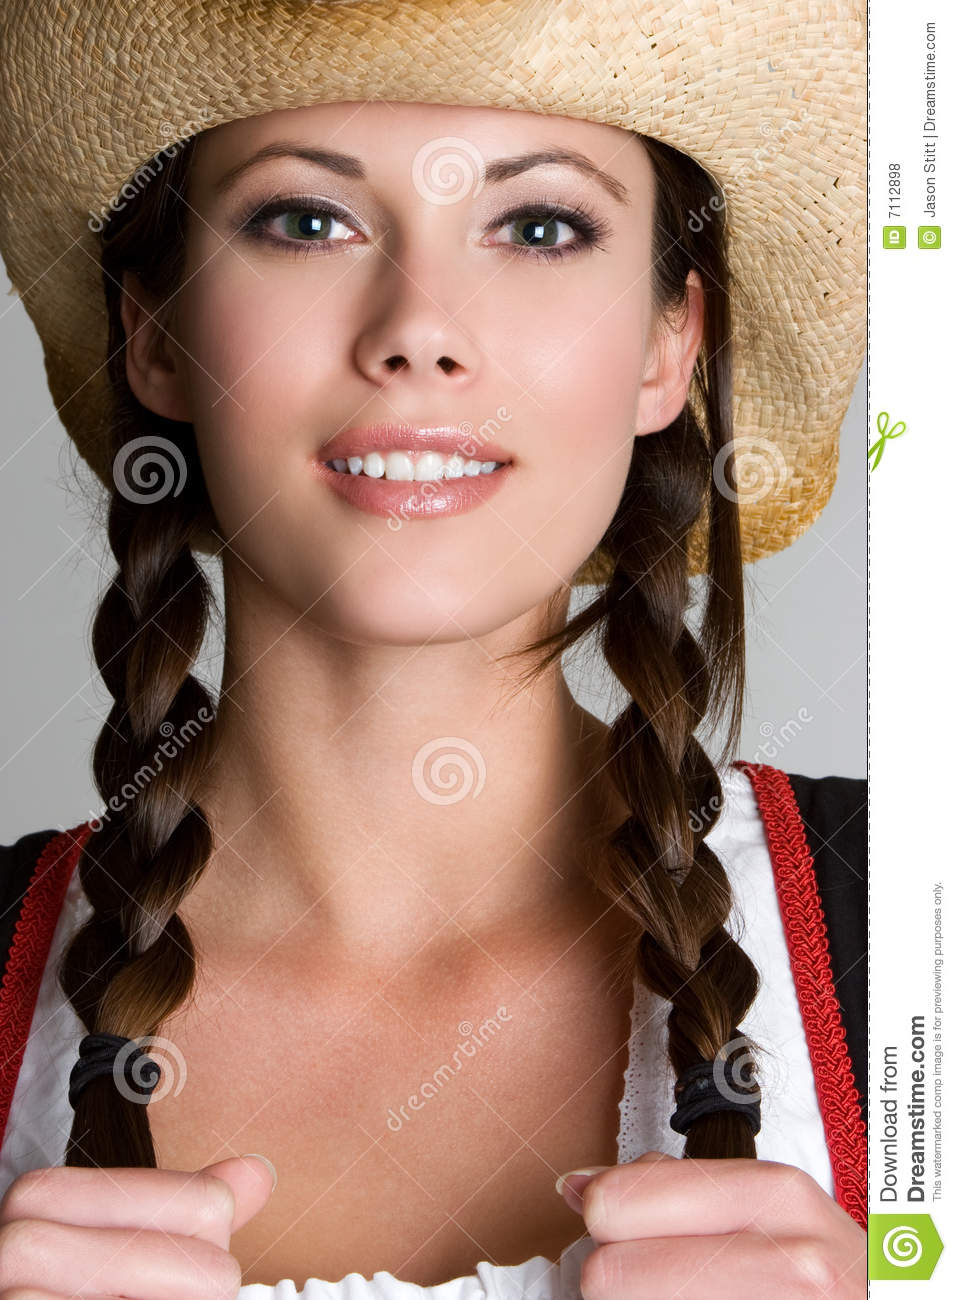 Gorgeous Girl Hd Wallpaper Pretty Cowgirl Stock Photo Image Of Woman Attractive